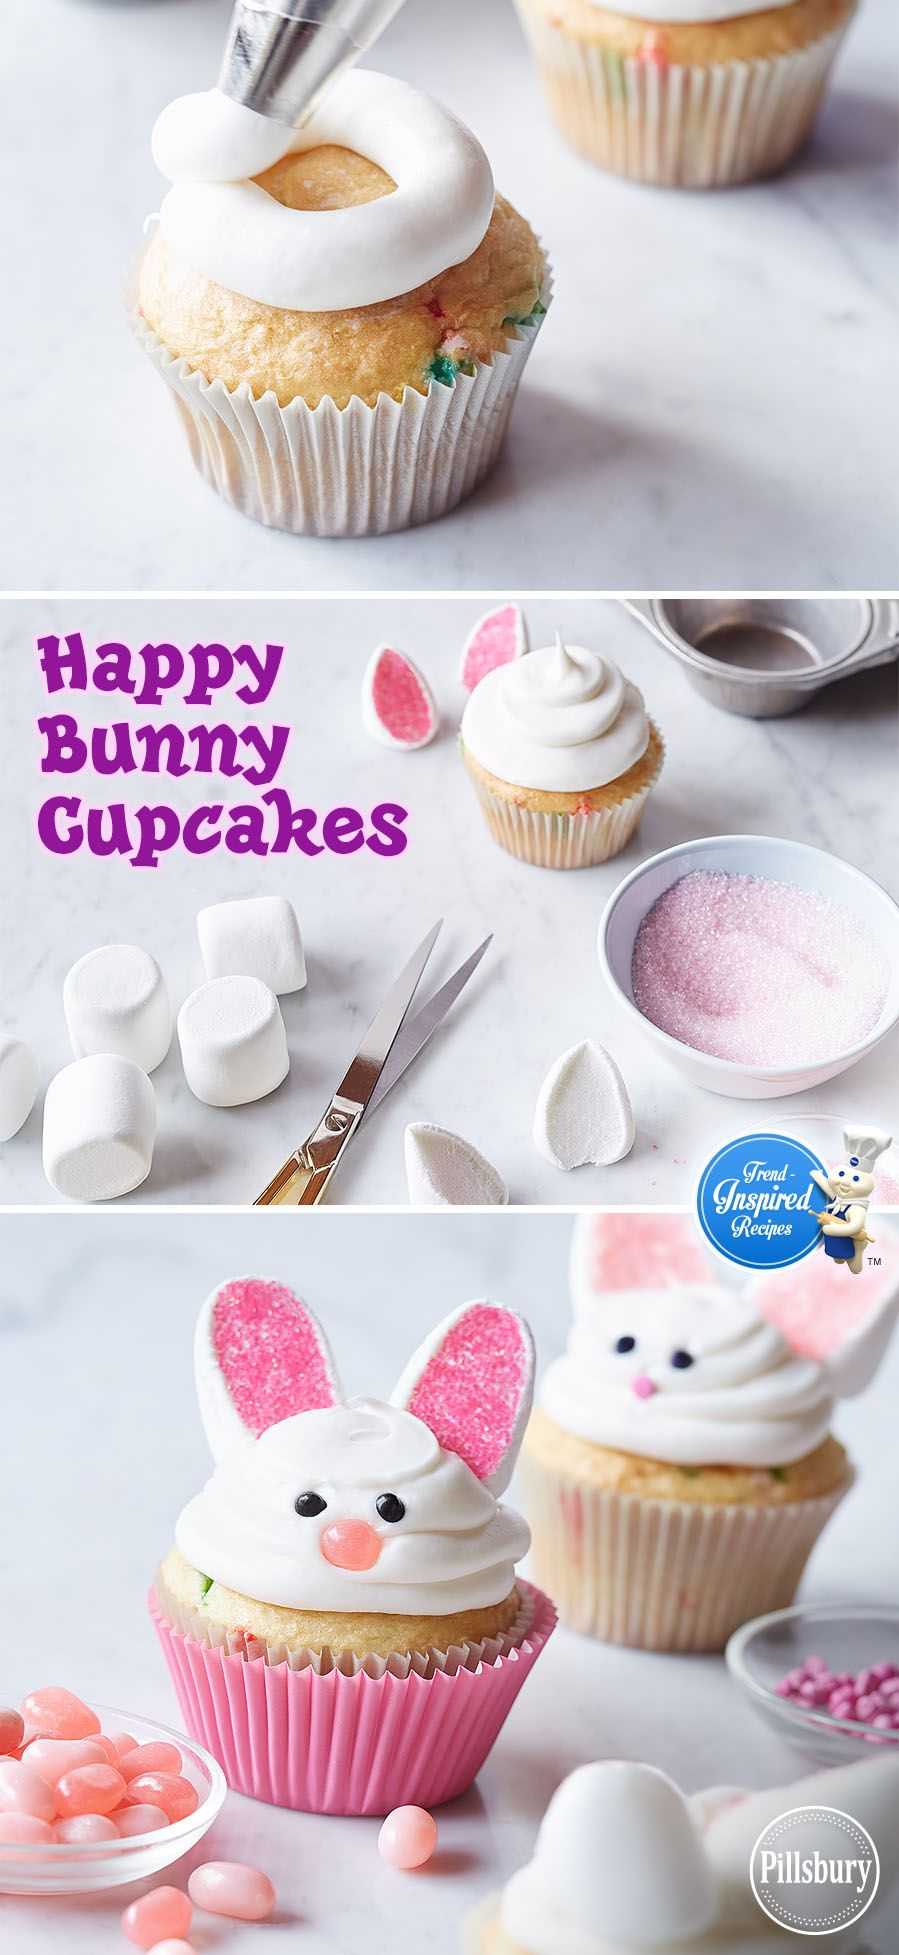 Happy bunny cupcakes recipe bunny cupcakes white cupcakes and